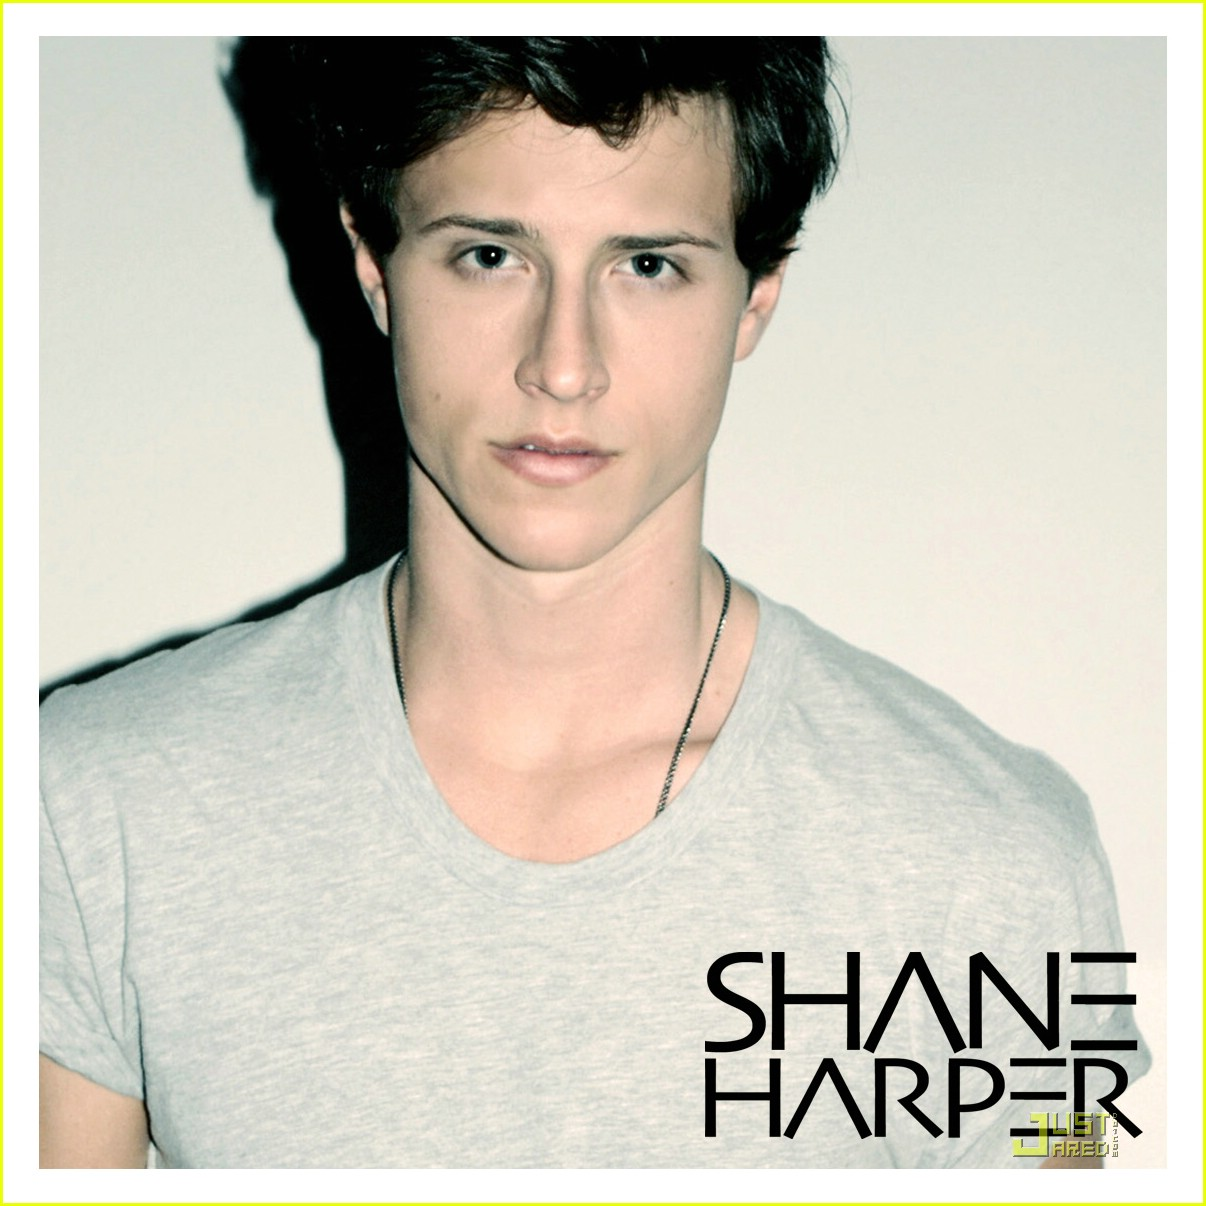 shane harper one step closer 01